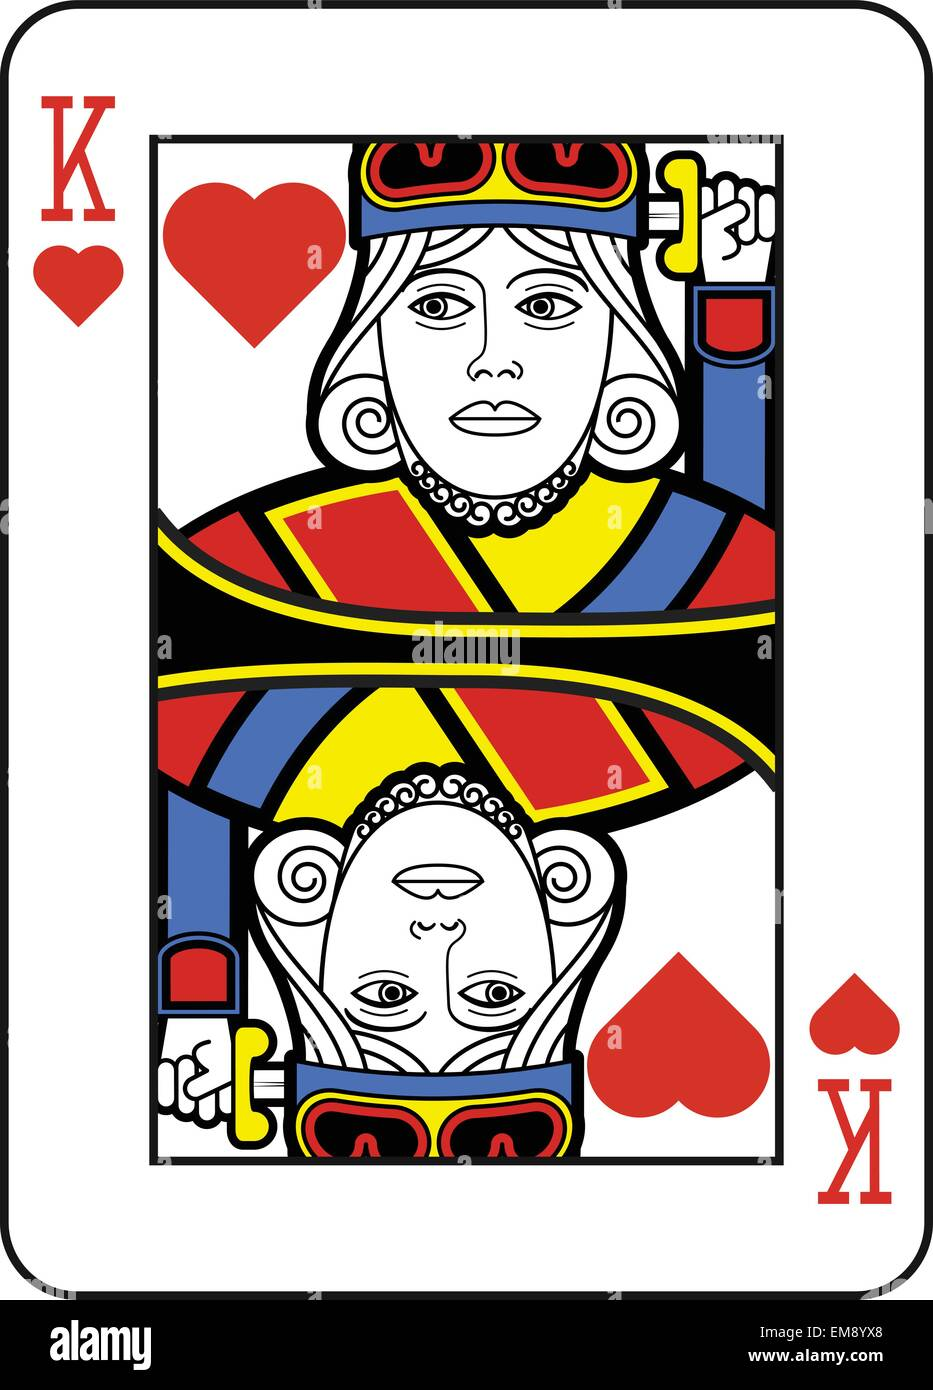 King Of Hearts Stock Photos & King Of Hearts Stock Images - Alamy